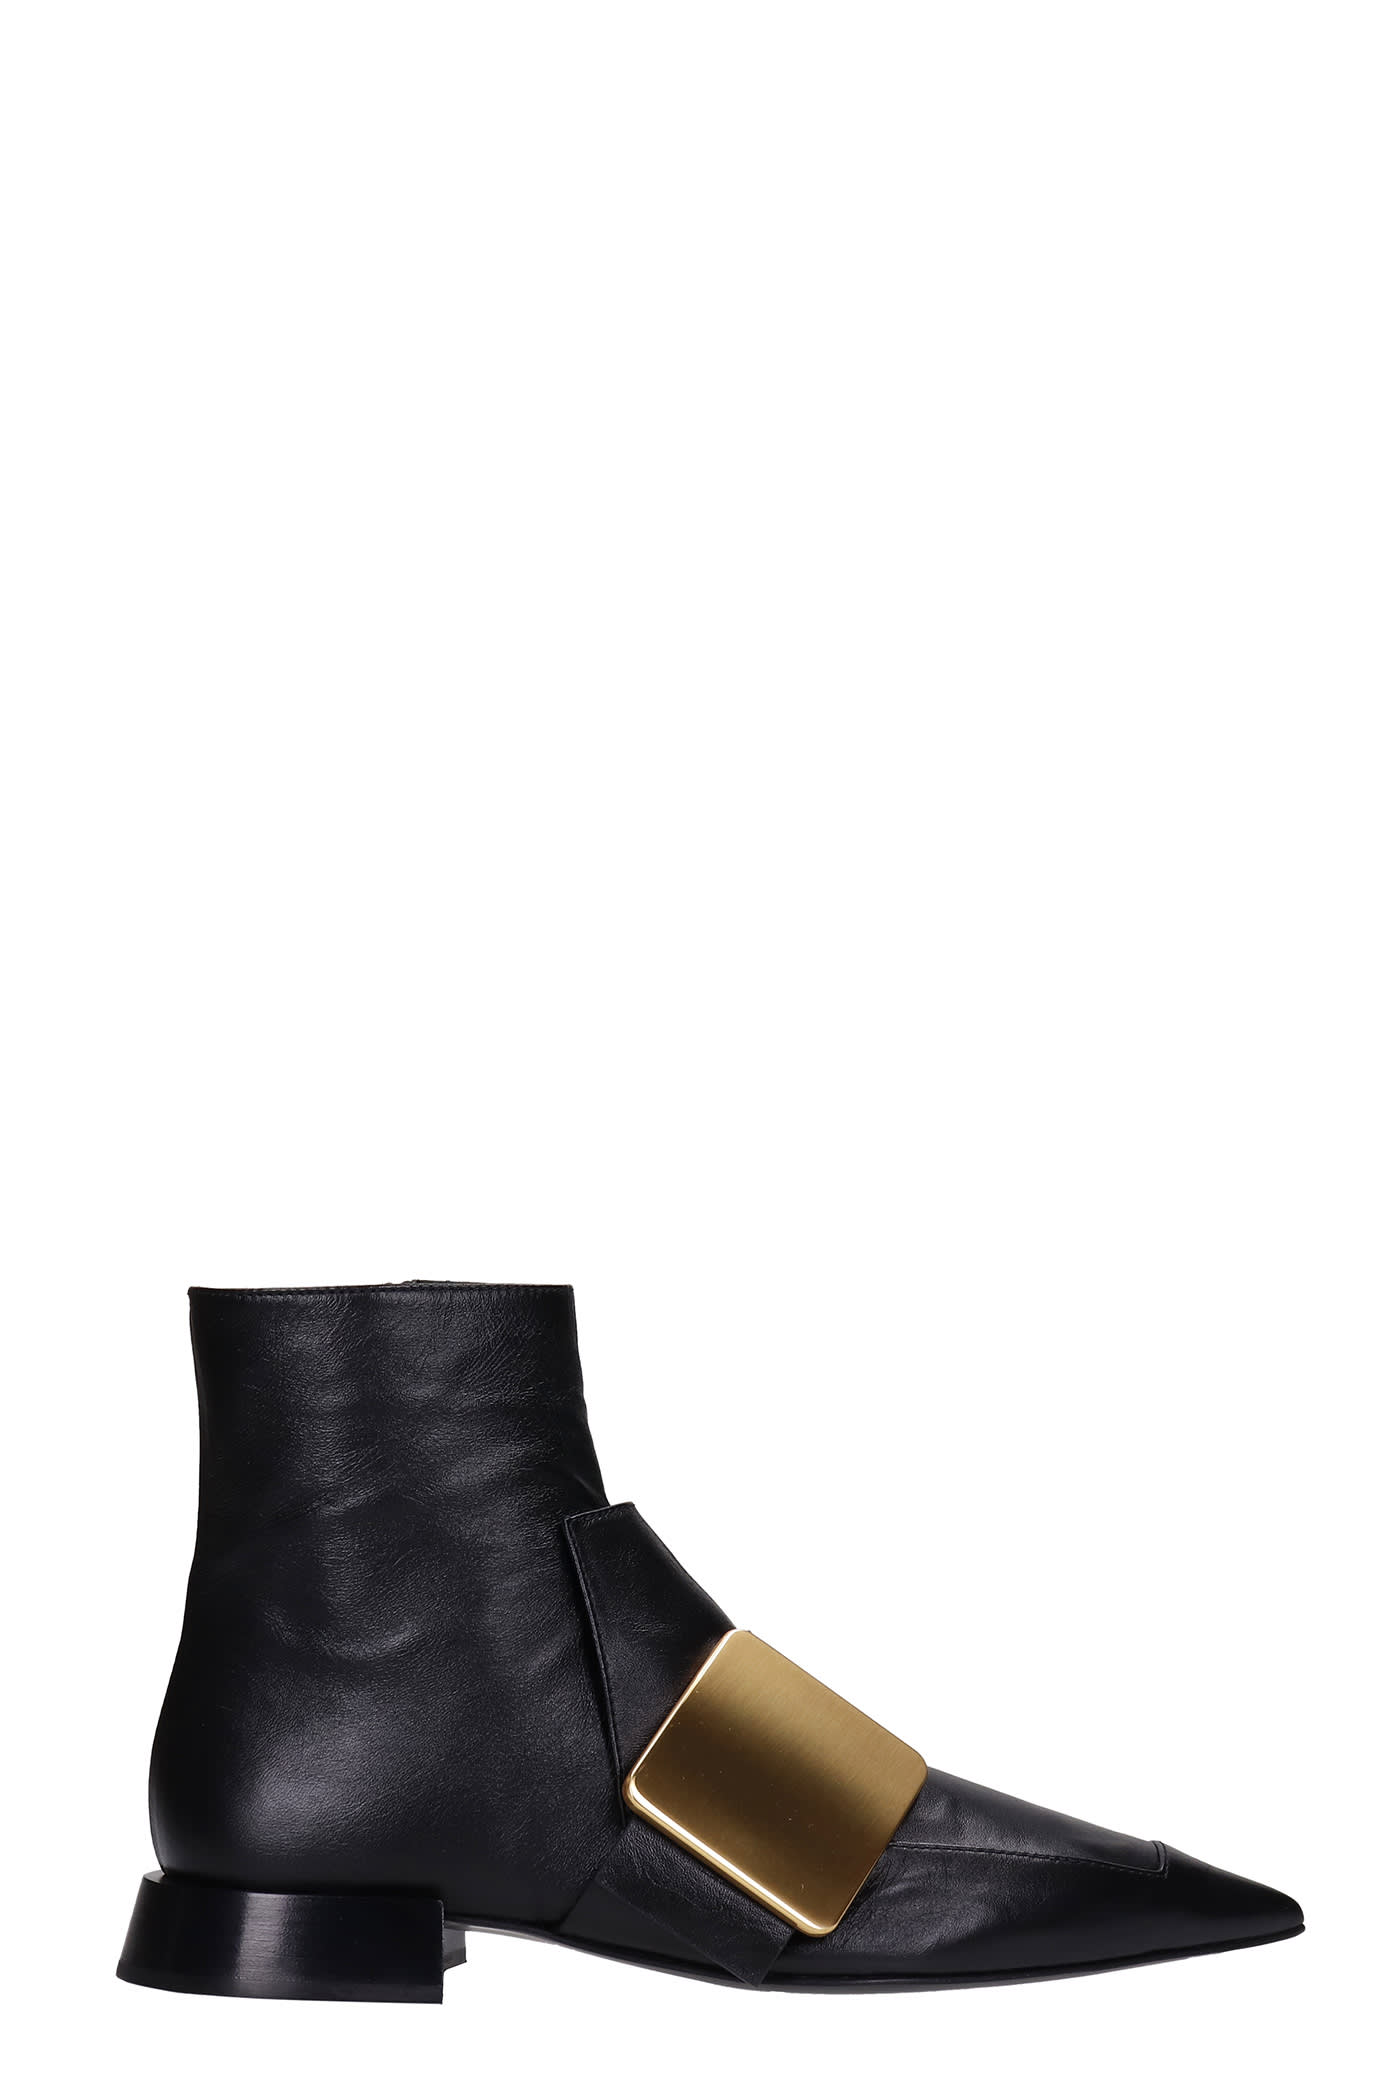 Buy Jil Sander Low Heels Ankle Boots In Black Leather online, shop Jil Sander shoes with free shipping